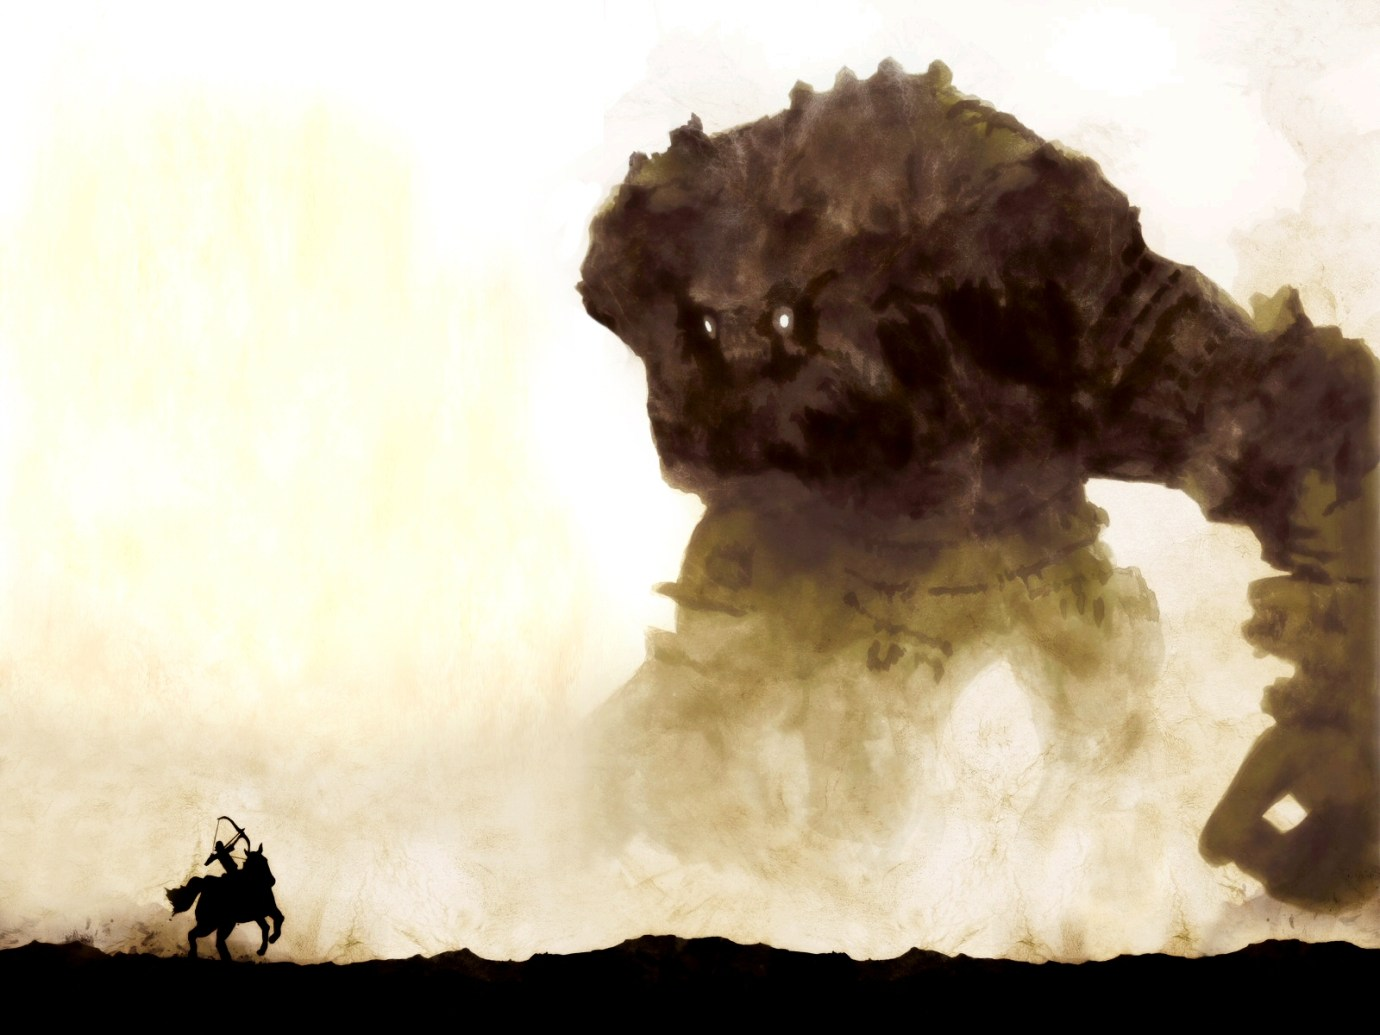 Weak_Gaming_Shadow_of_the_Colossus_remake